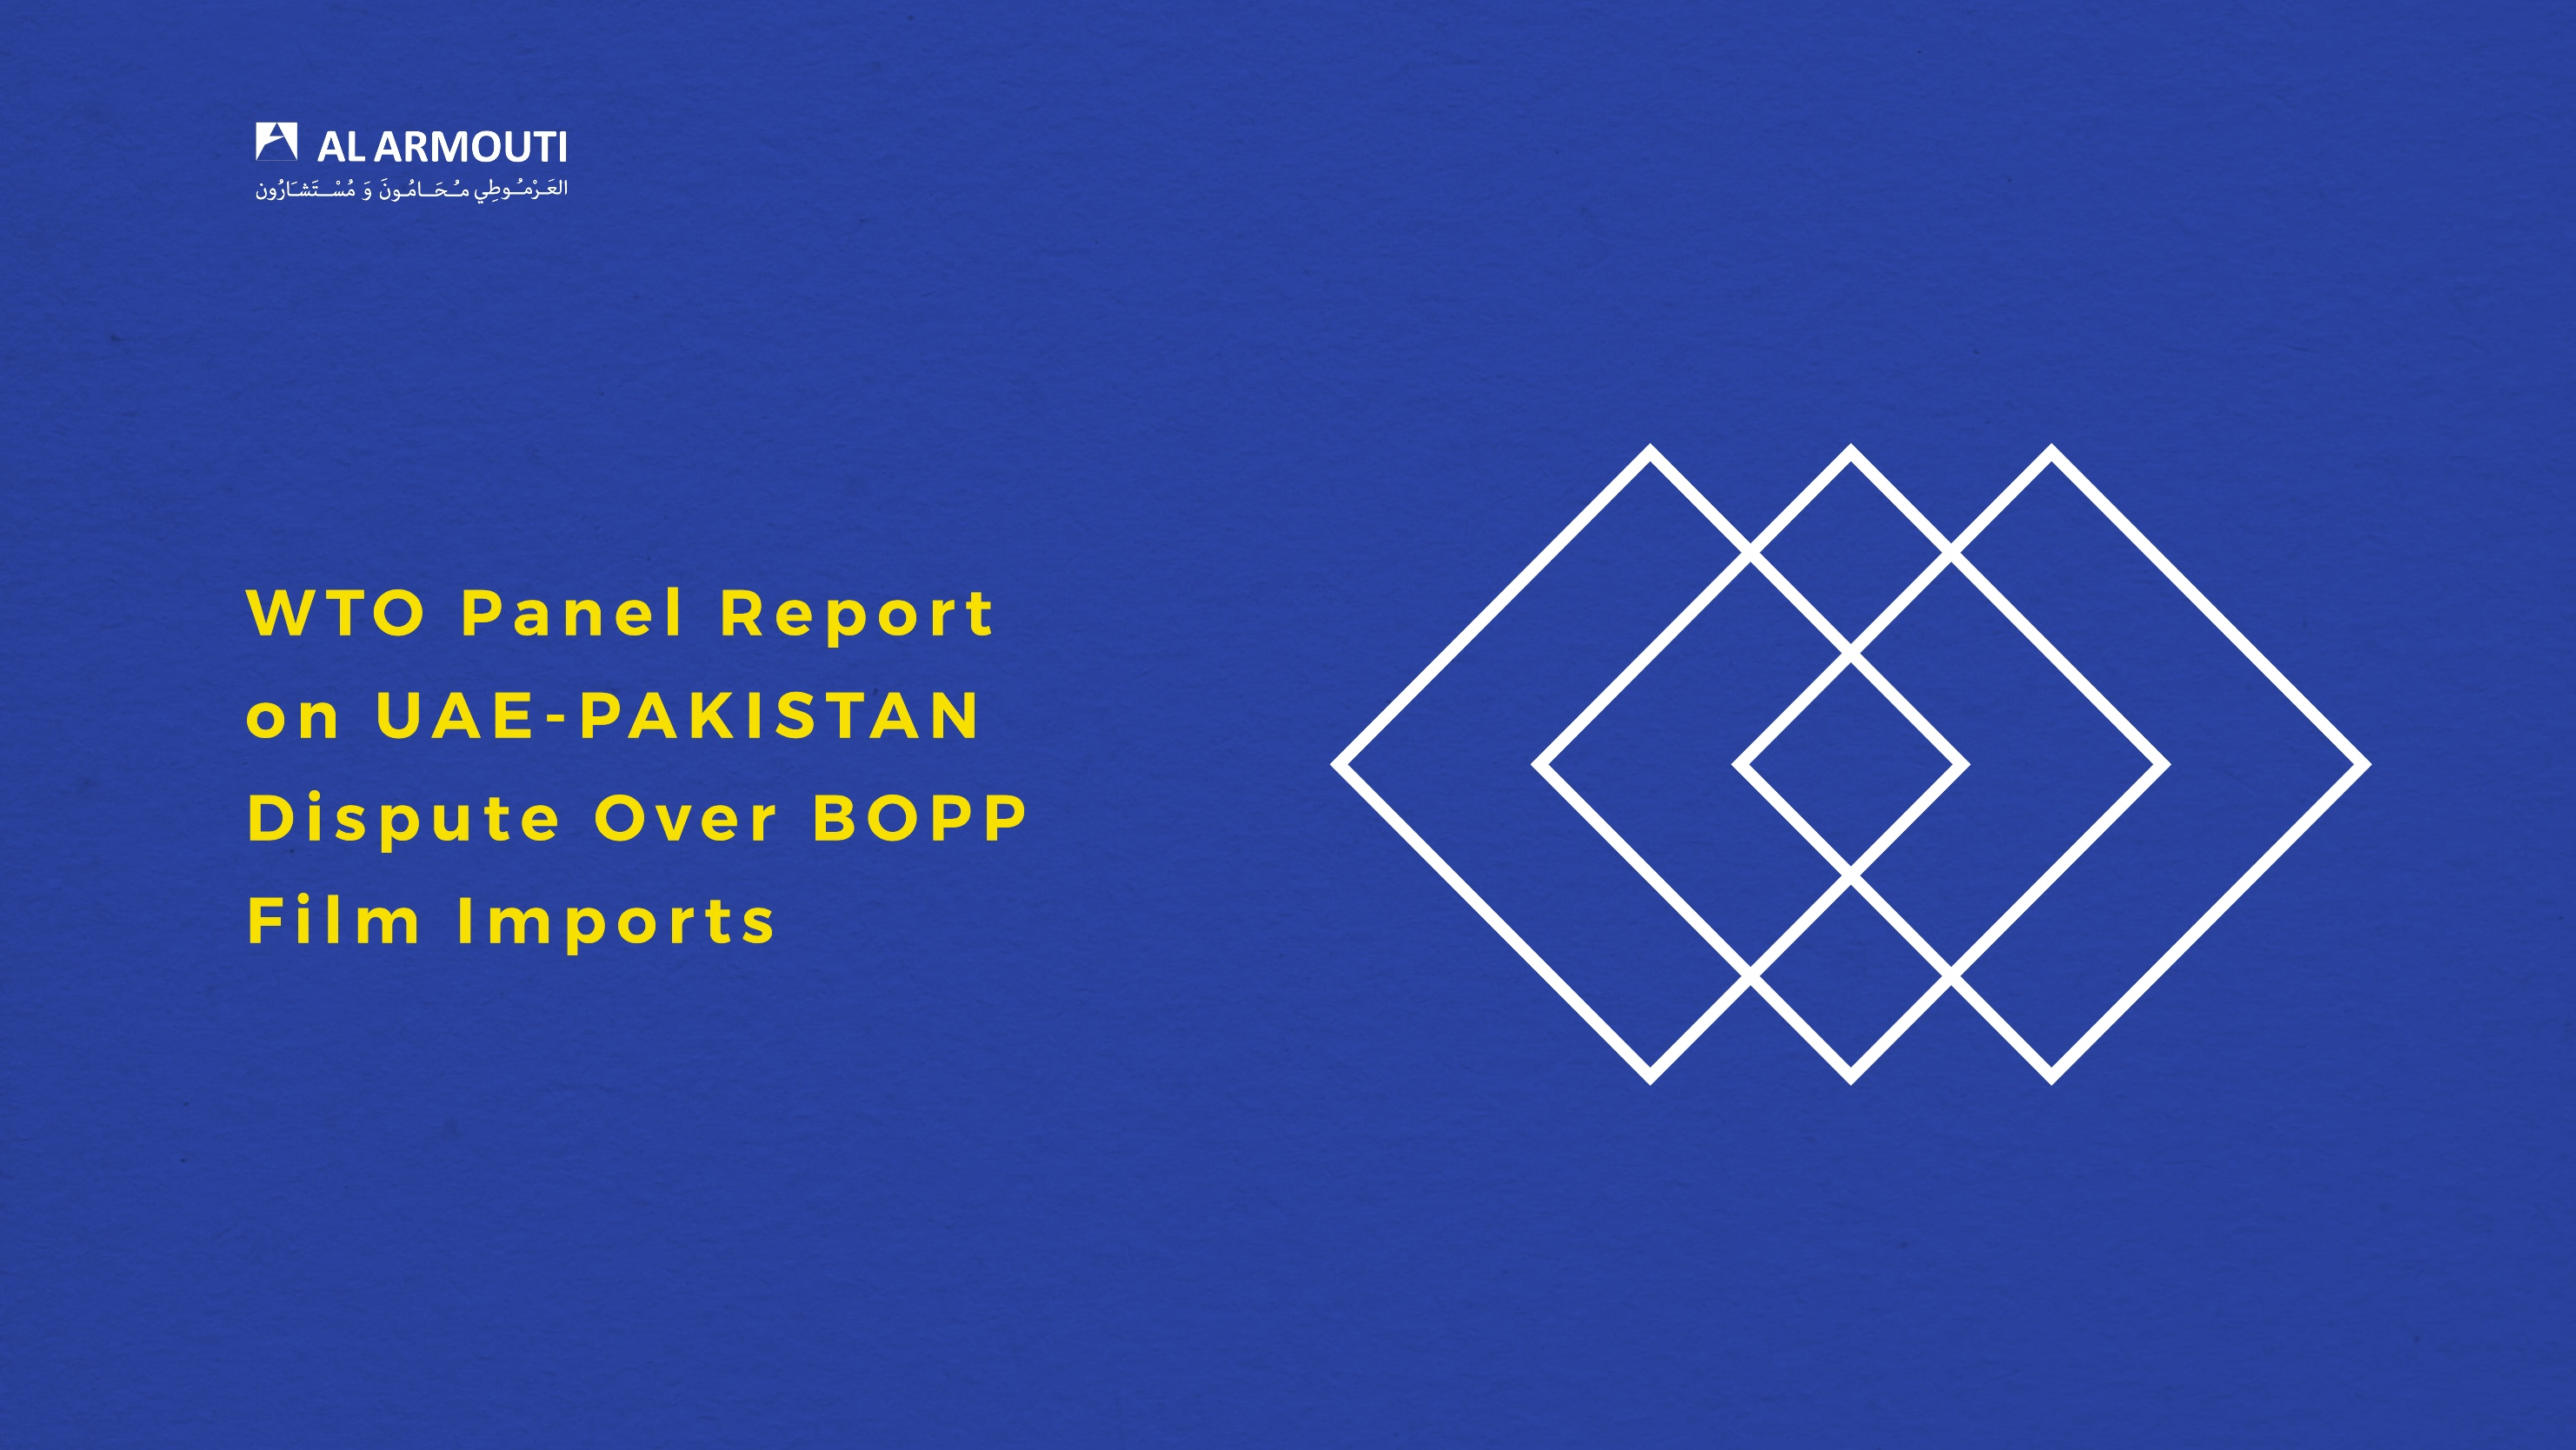 WTO Panel Report on UAE-Pakistan Dispute Over Anti-Dumping Duties on BOPP Film